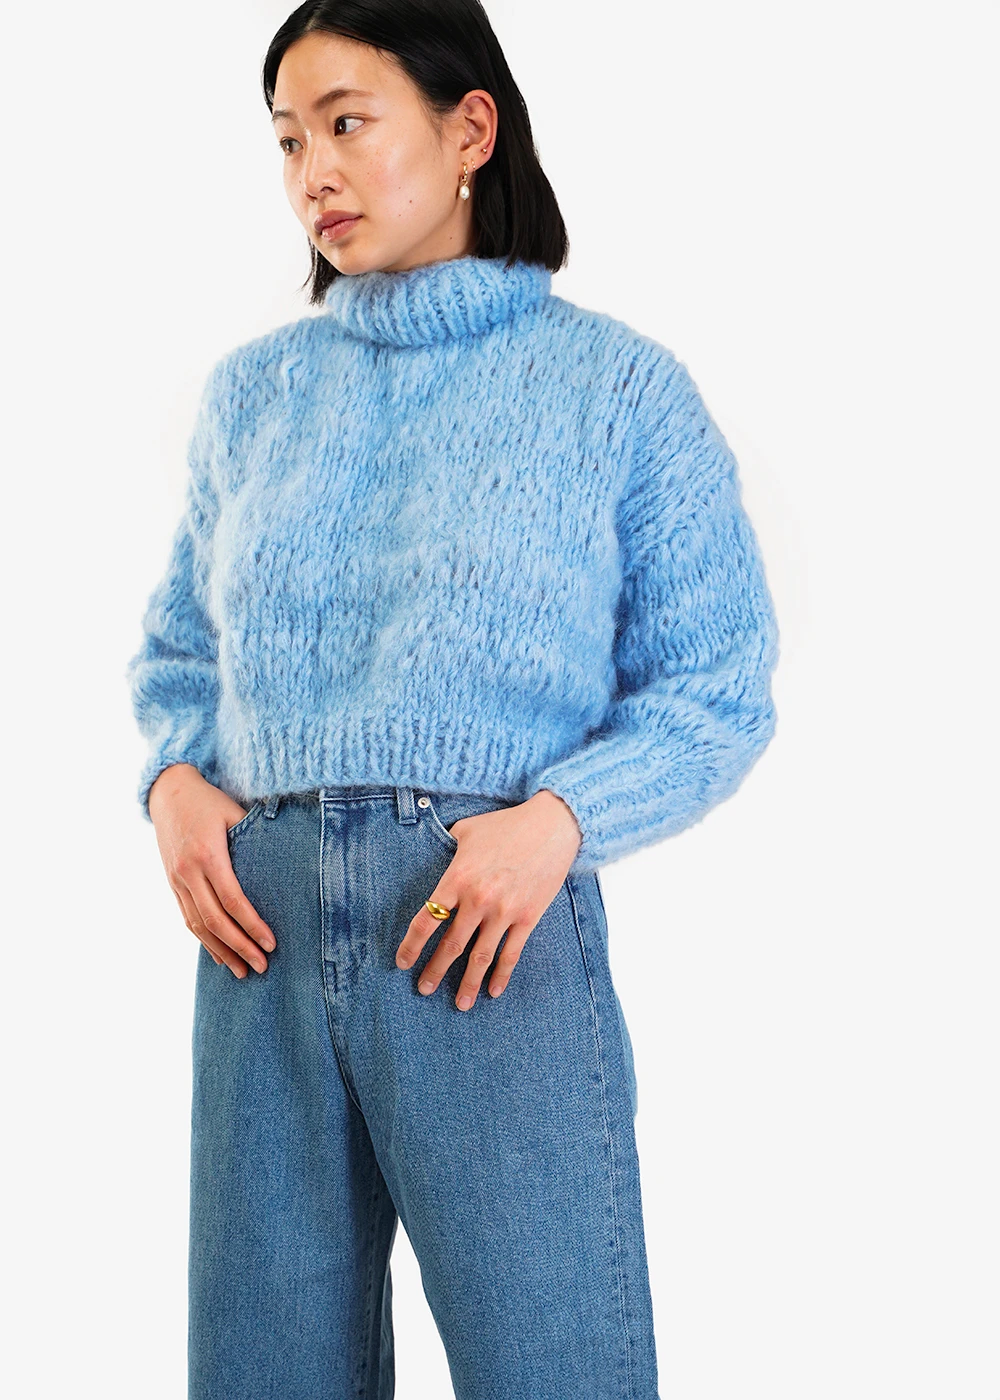 Frisson Knits Sky Blue Isabella Sweater — Shop sustainable fashion and slow fashion at New Classics Studios